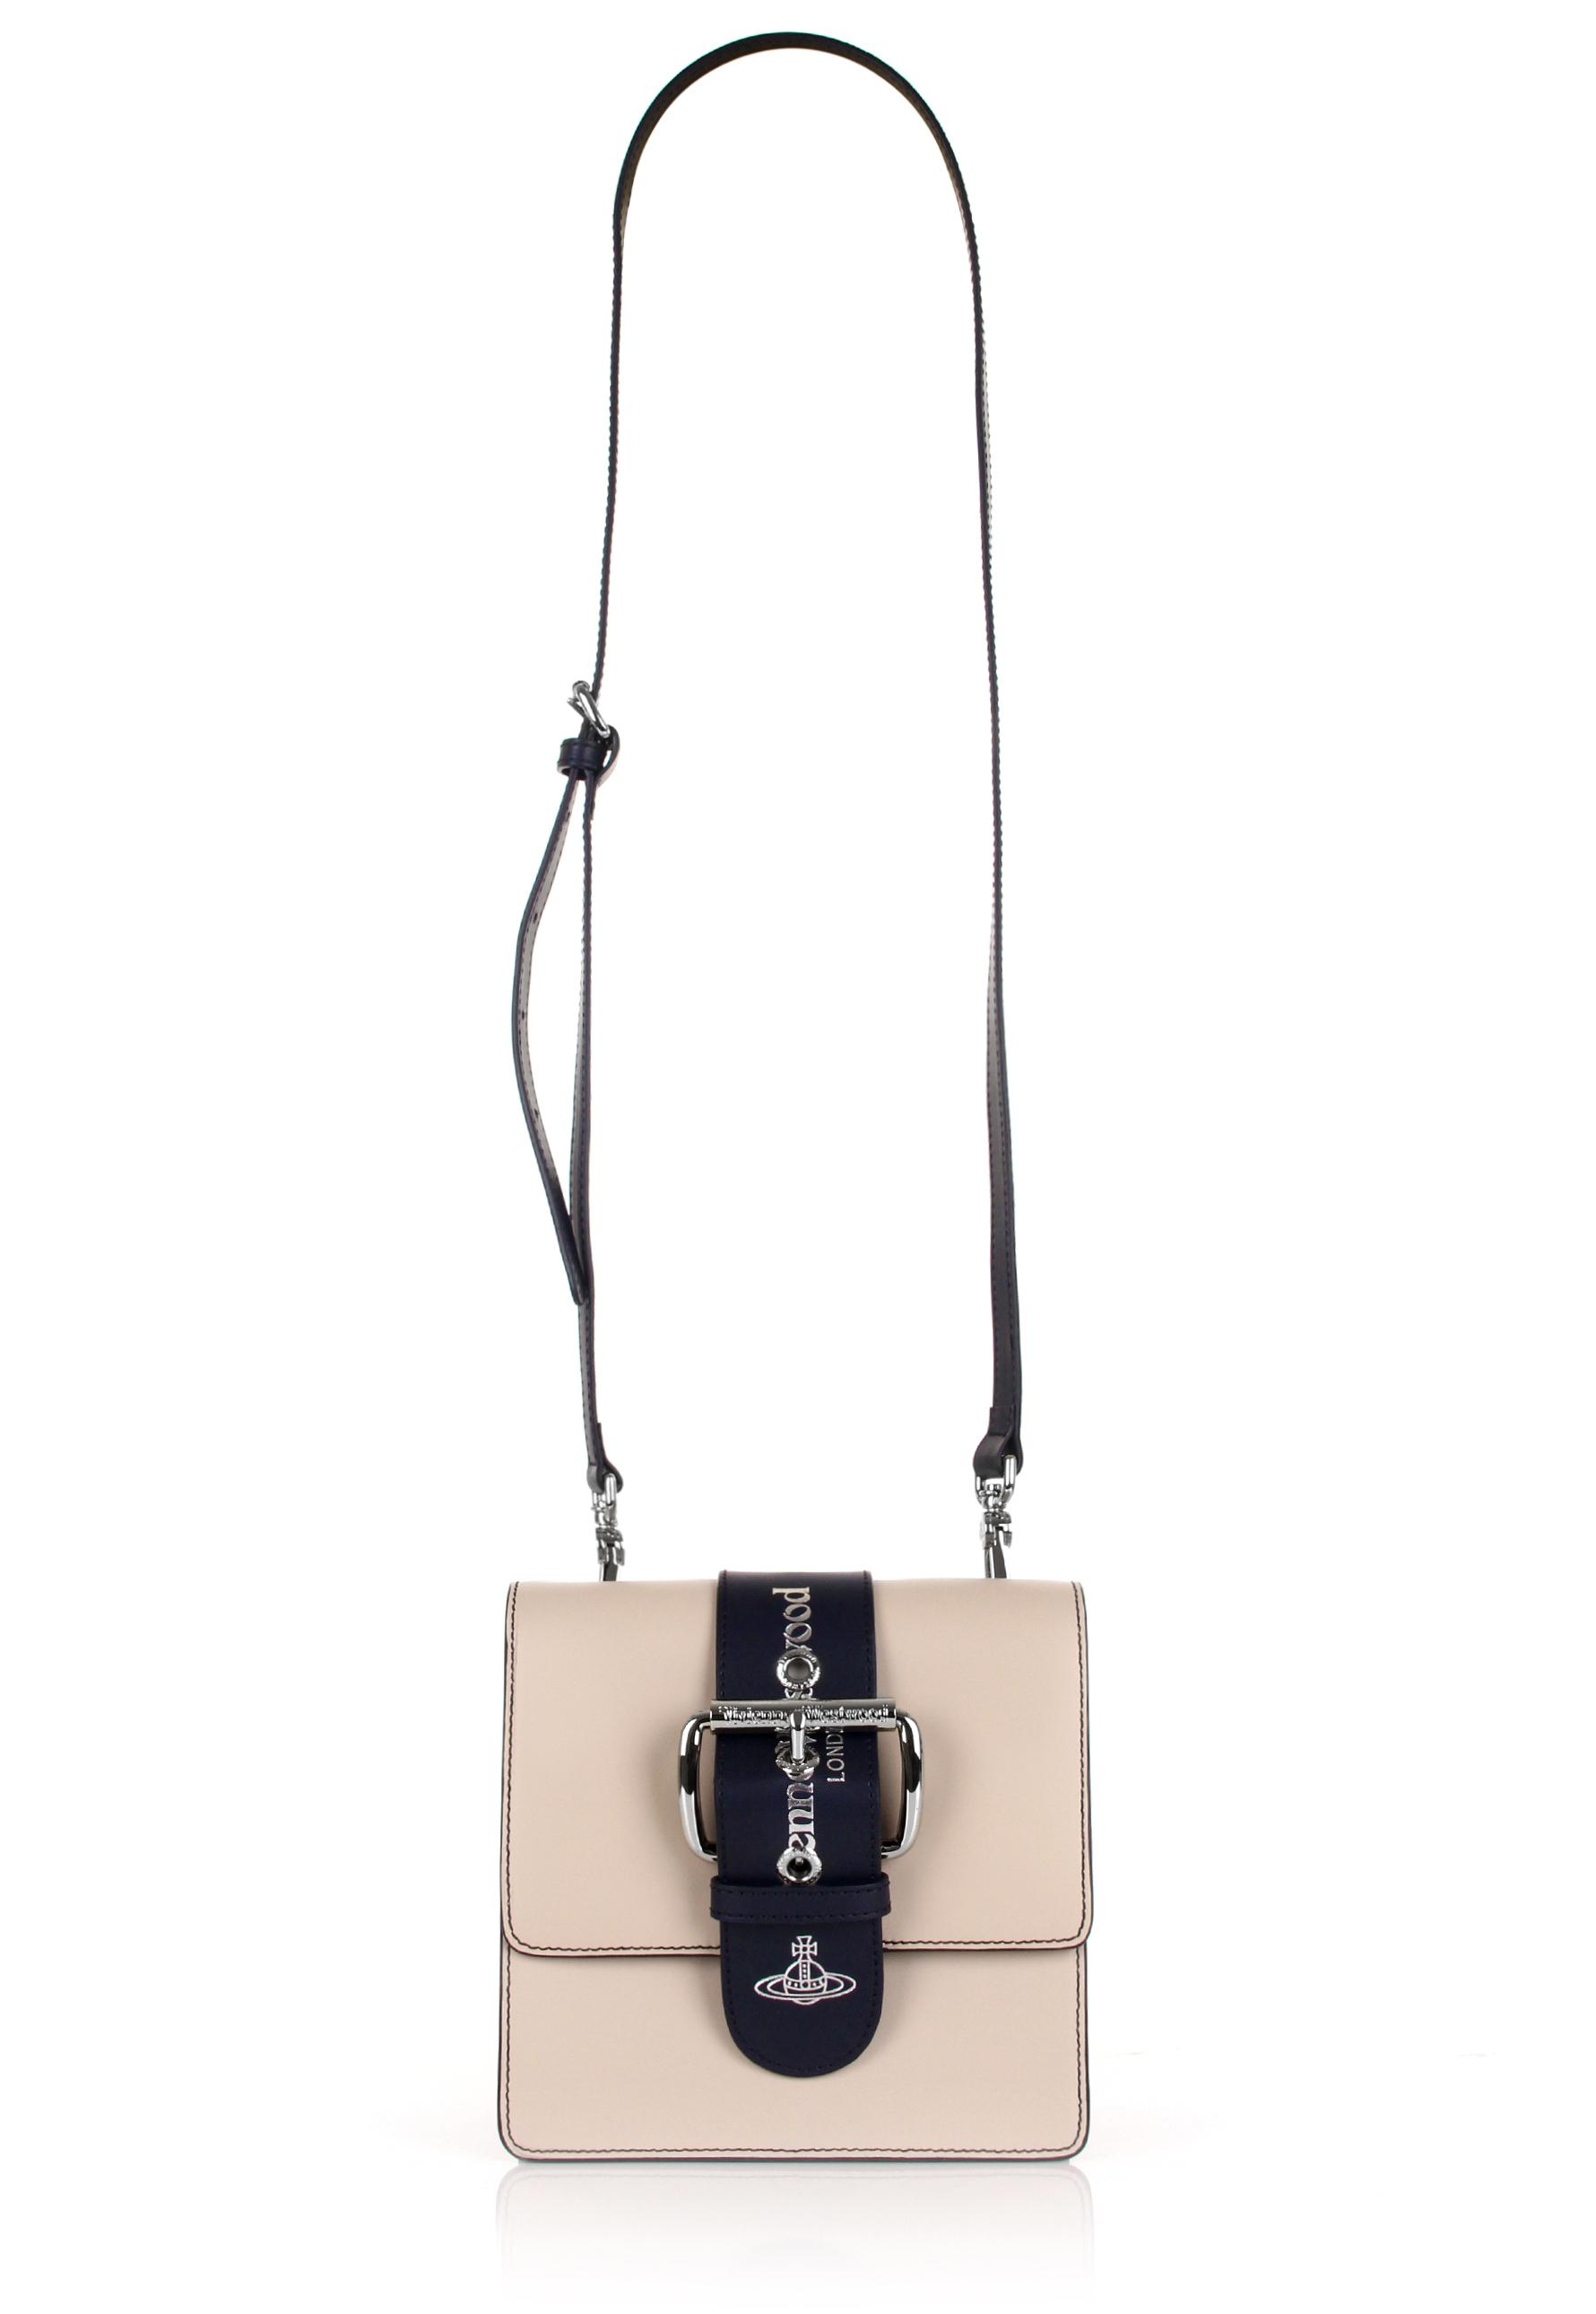 d68bb073ad6e Lyst - Vivienne Westwood Alex 131137 Small Handbag Nude in Natural